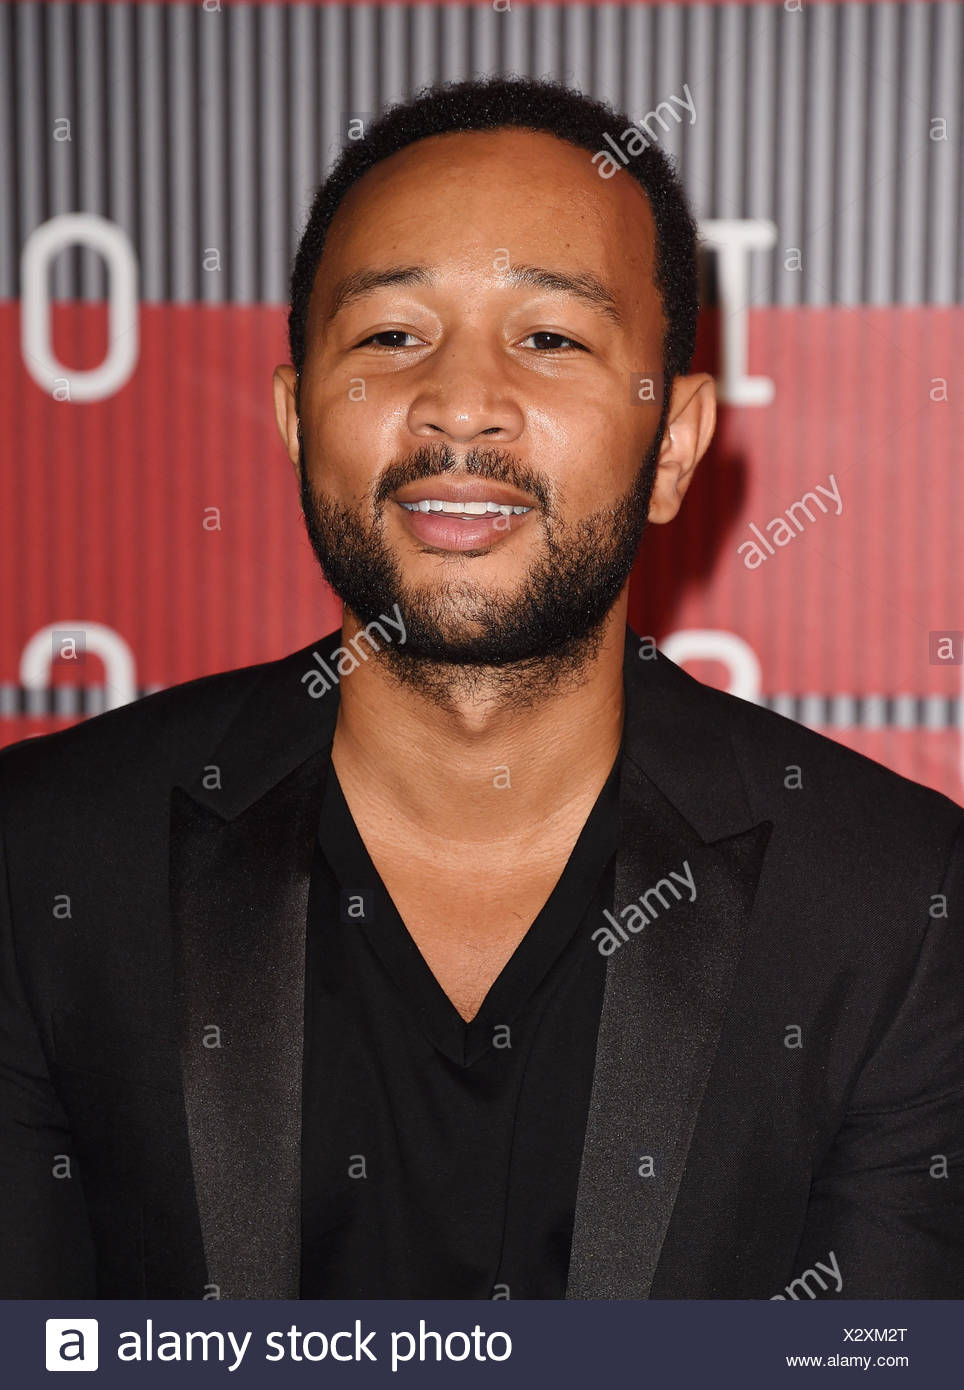 JOHN LEGEND arrives at the 2015 MTV Video Music Awards at Microsoft Theater on August 30, 2015 in Los Angeles, California., Additional-Rights-Clearances-NA - Stock Image